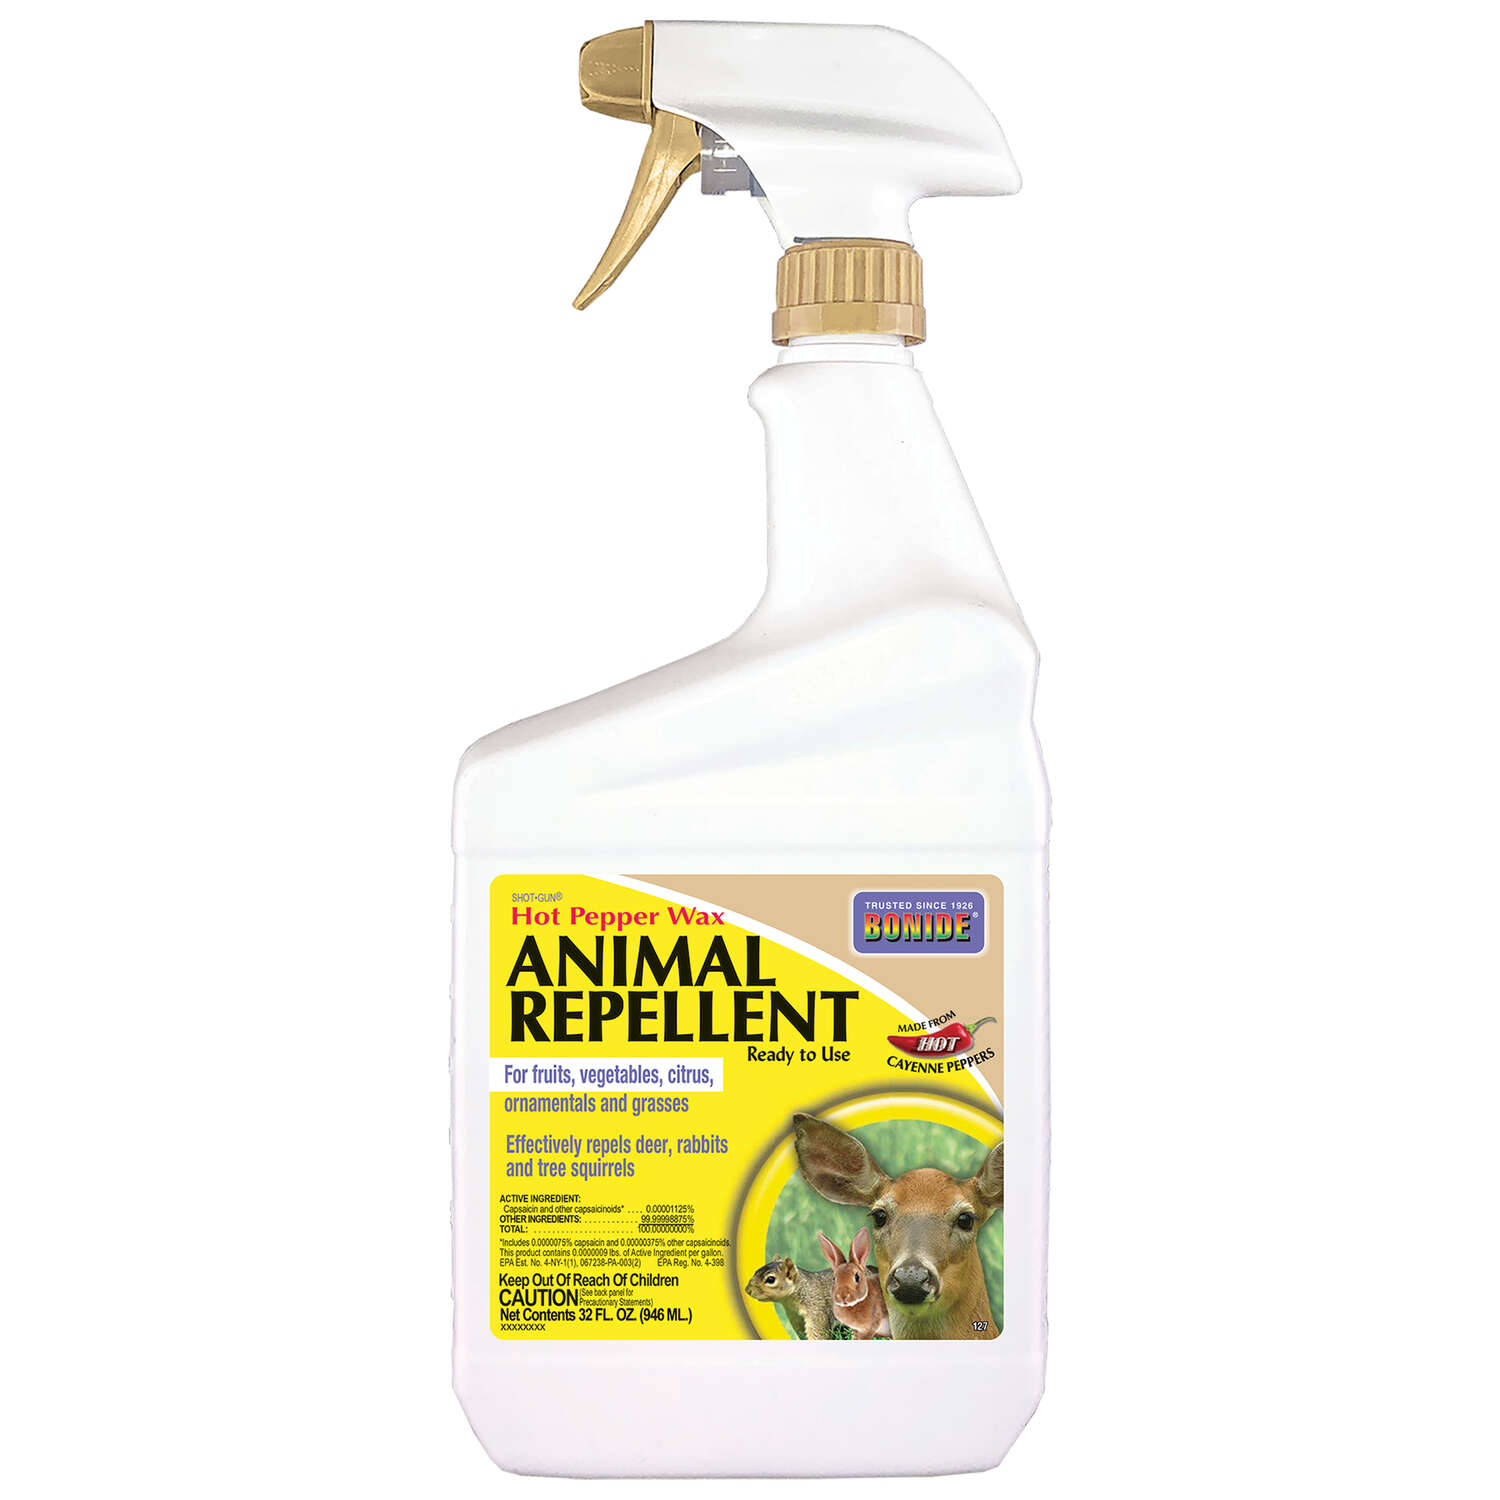 Bonide  Hot Pepper Wax  Animal Repellent  Spray  For Most Animal Types 32 oz.